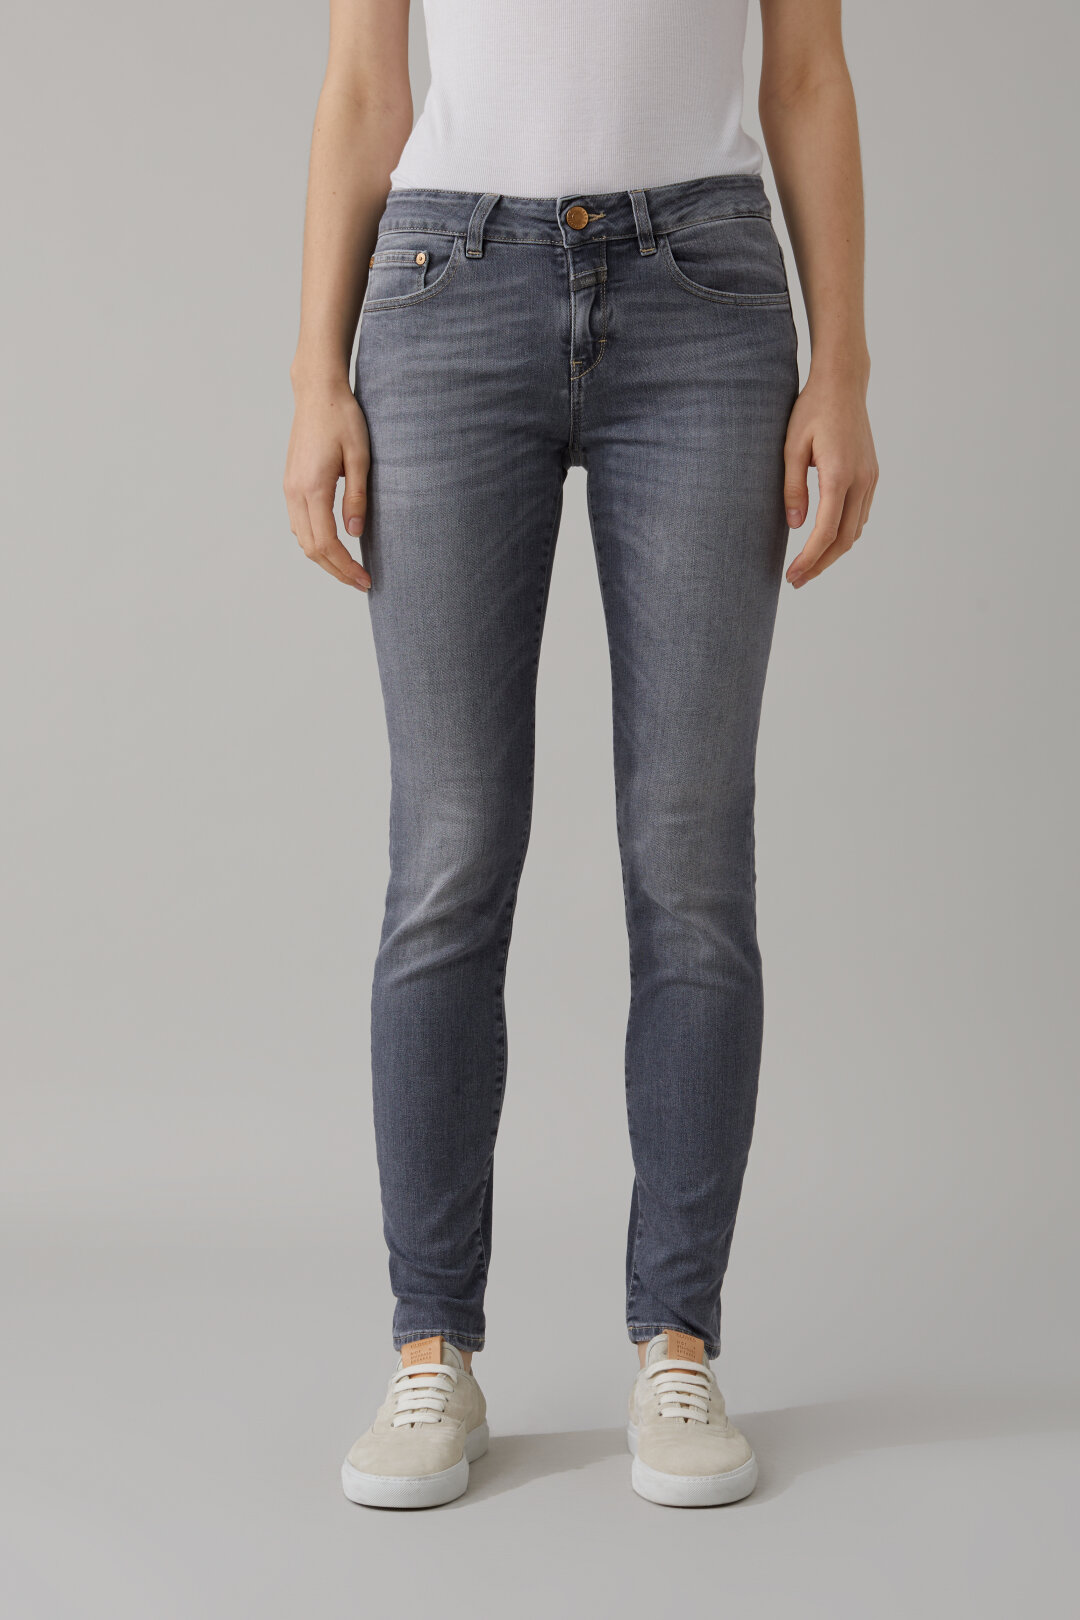 Baker Long Grey Super Stretch Denim